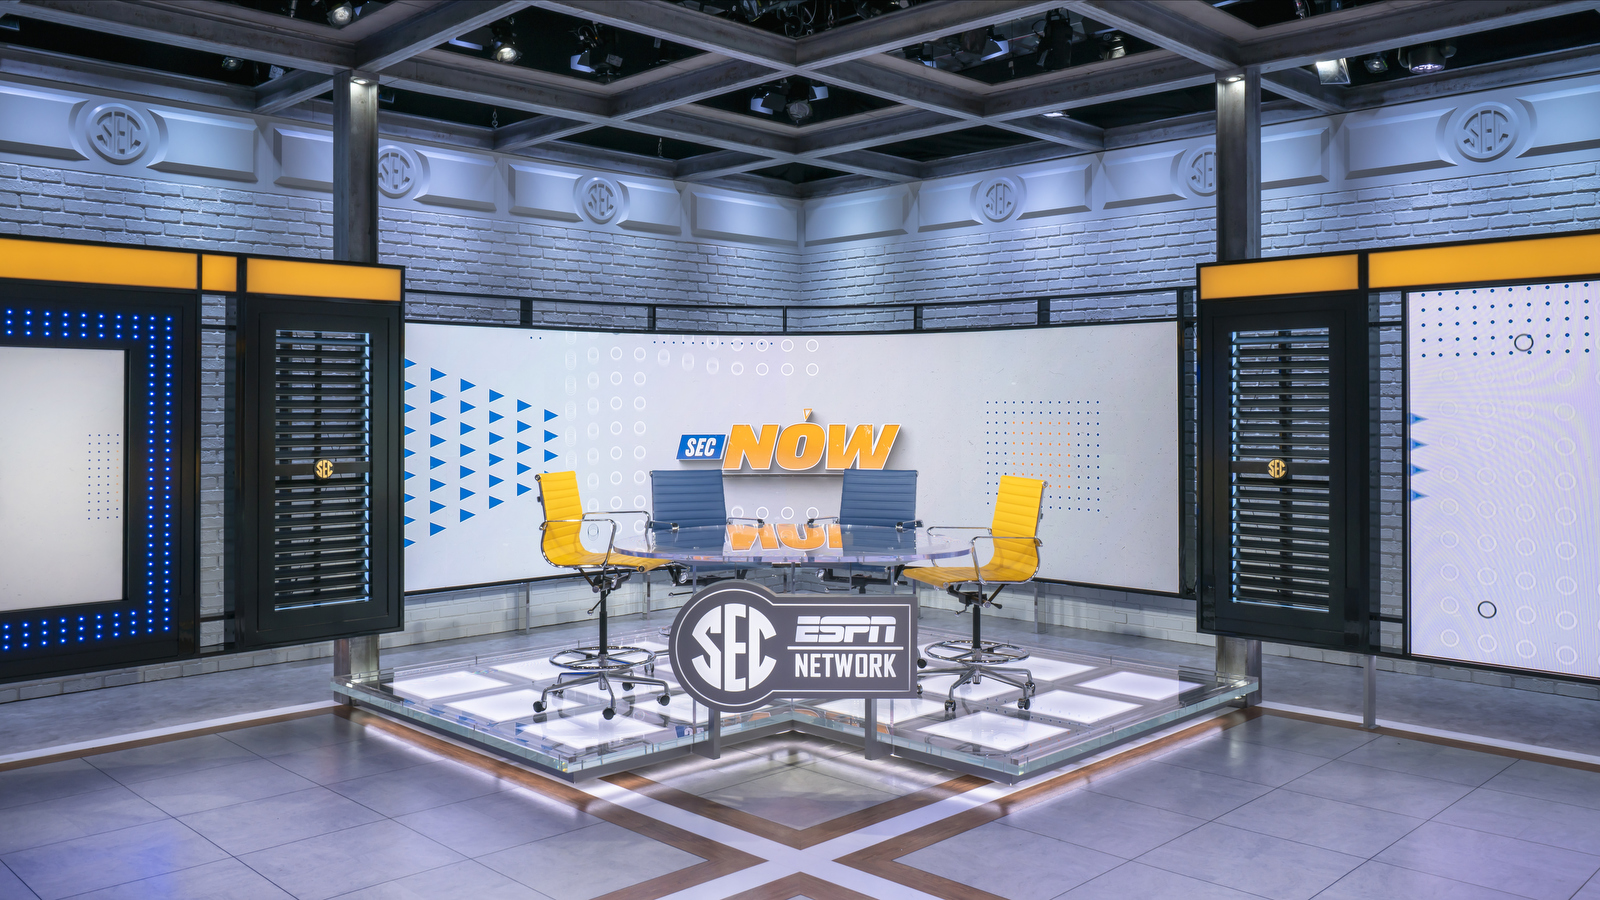 NCS_SEC-Network_Studio_2019_030